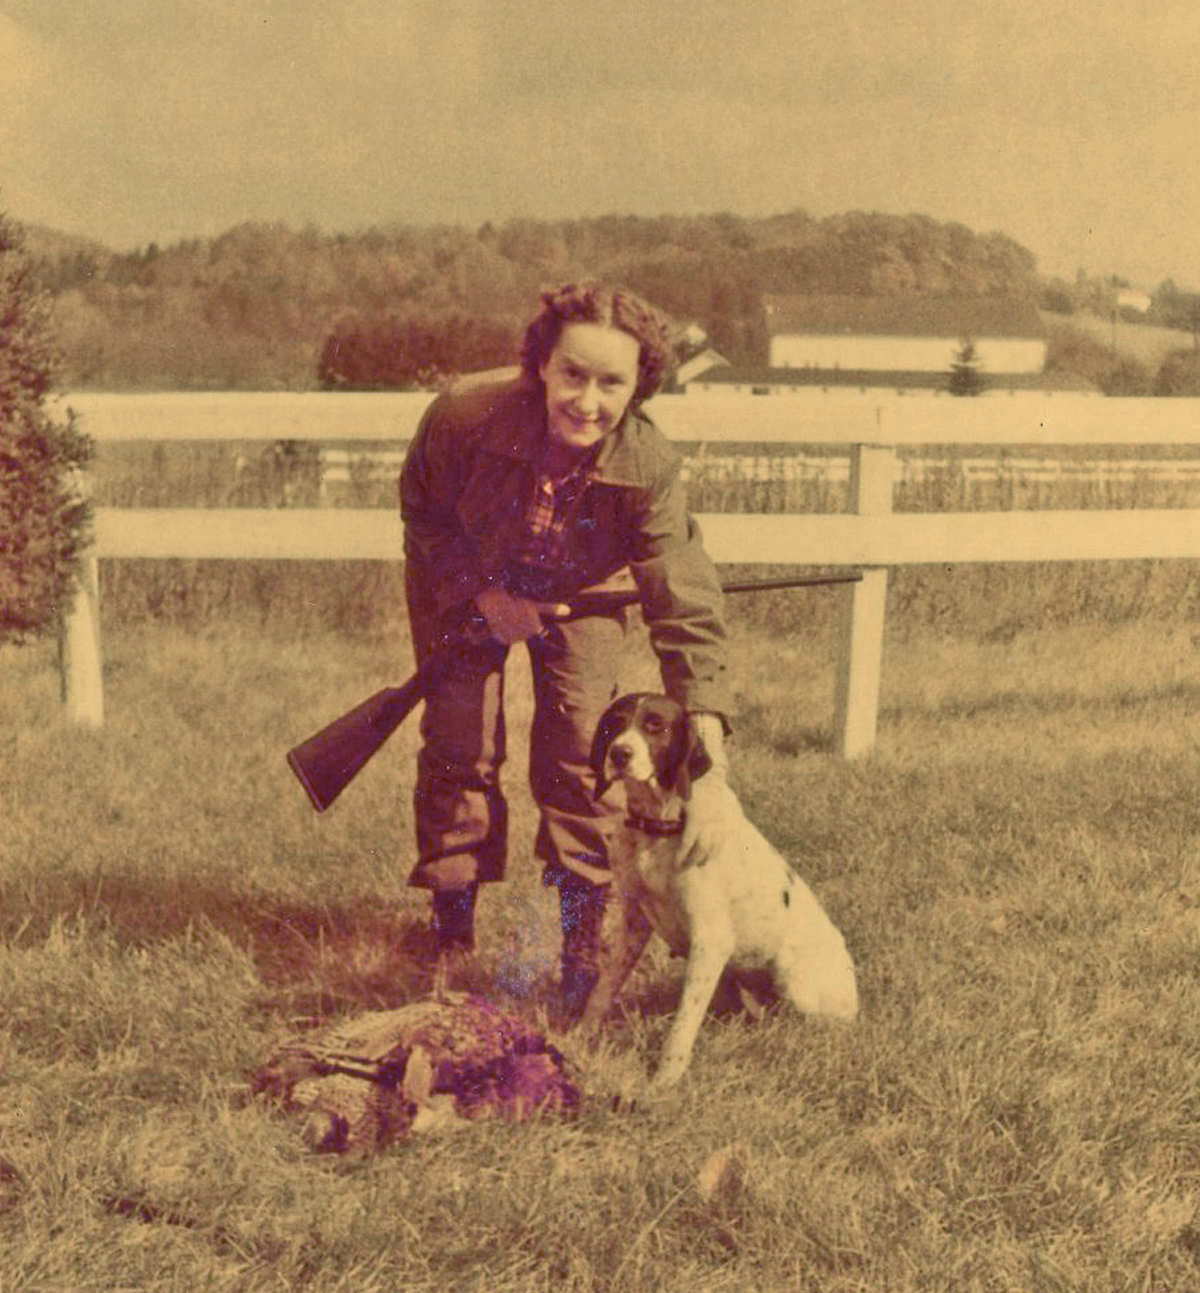 Evelyn Evans posing after a day hunting in the field, 1950s. Evans Family papers and photographs, MSS 818, Detre Library & Archives, Heinz History Center.